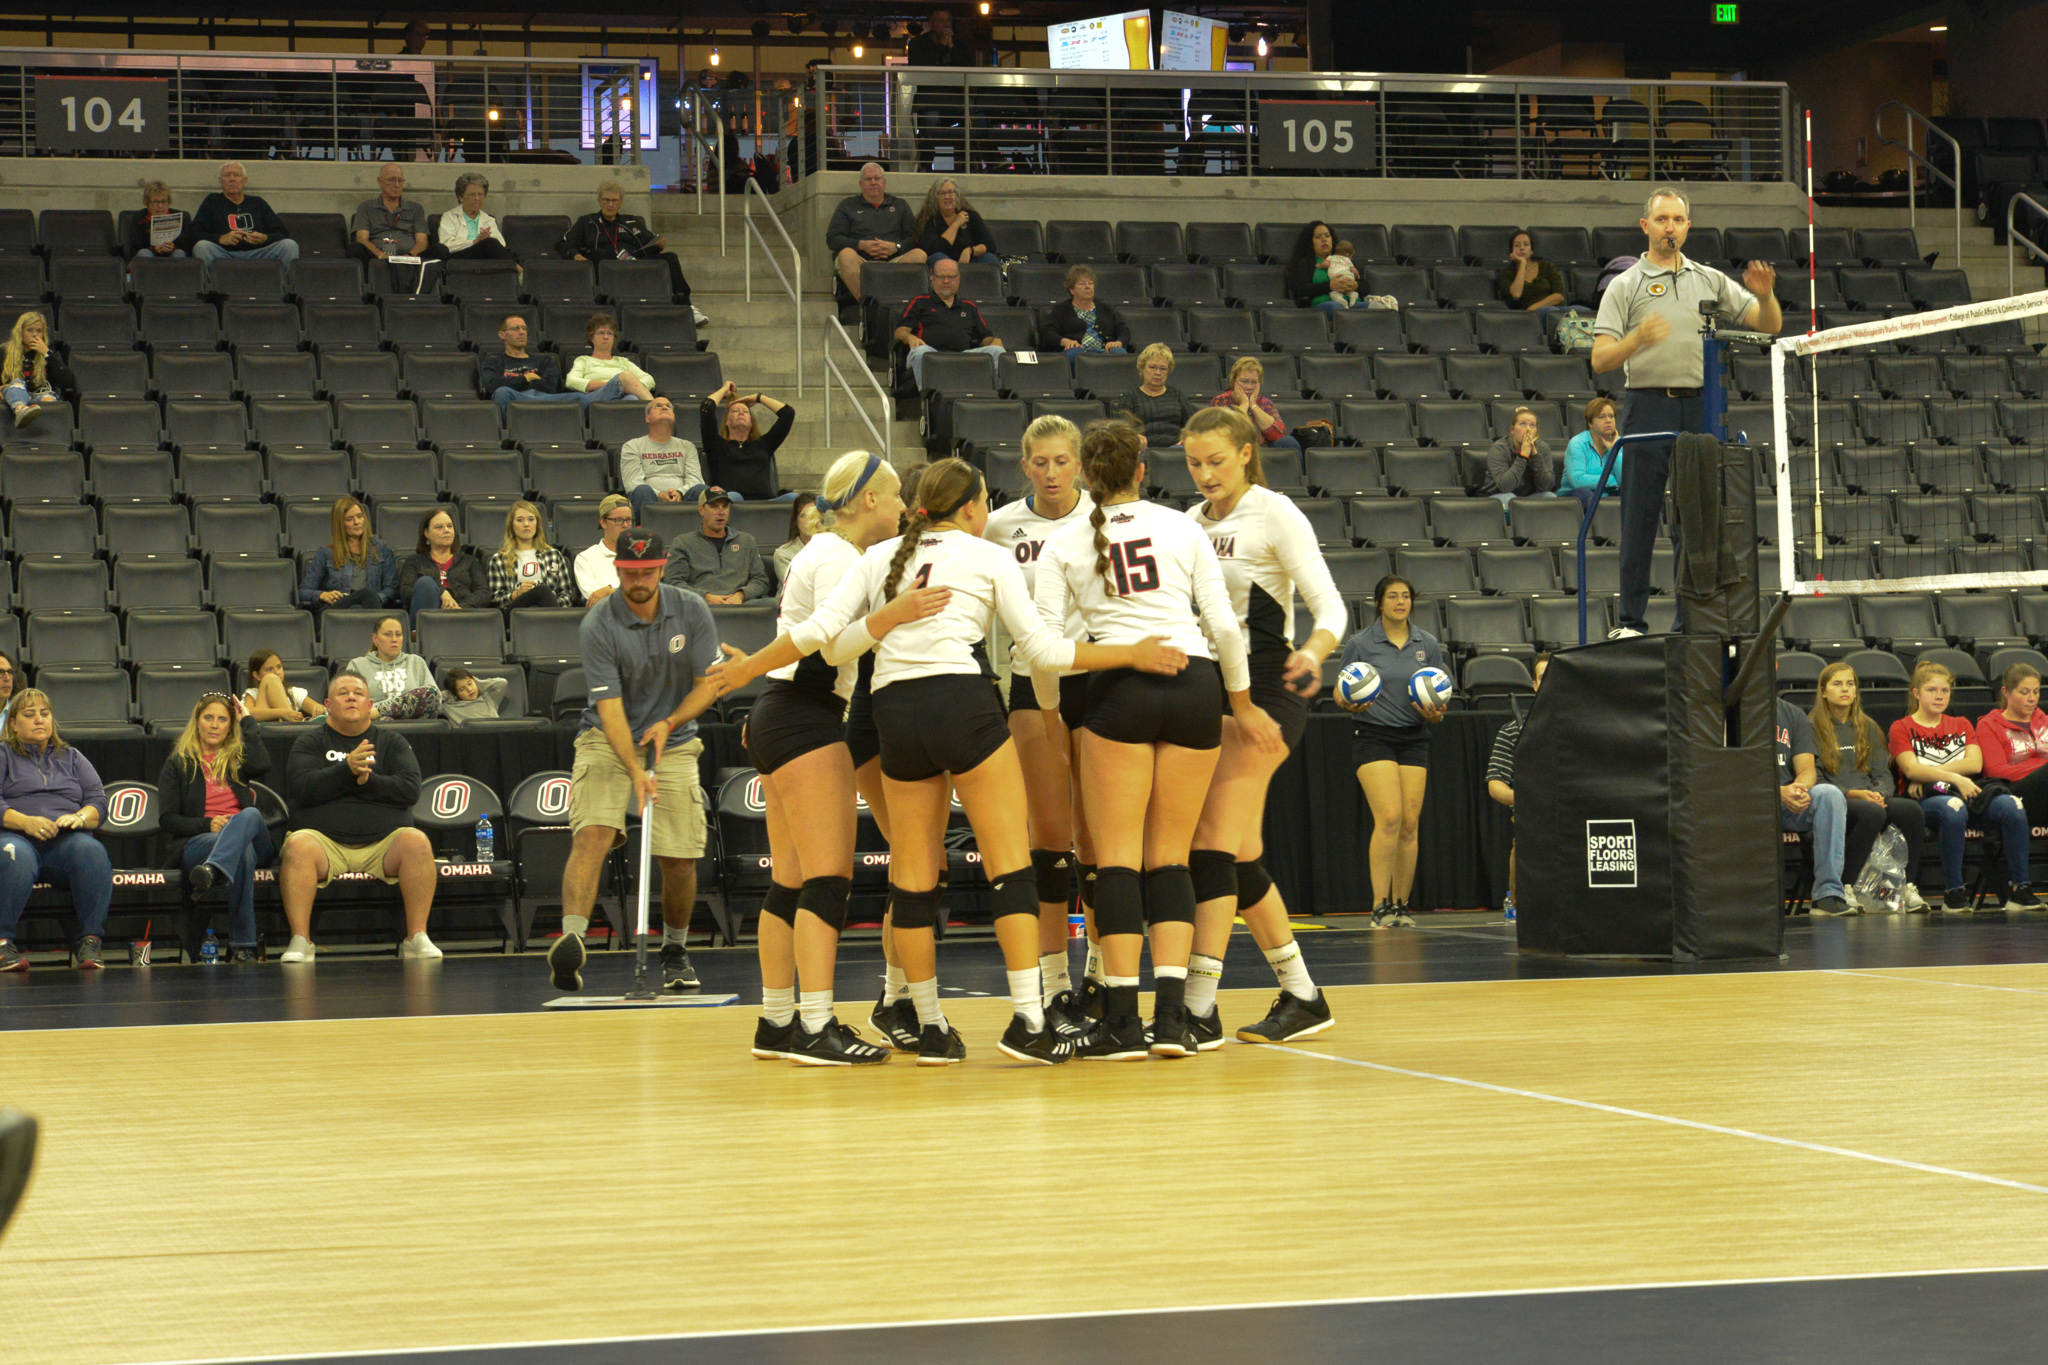 The UNO volleyball team is huddling together at the middle of the court.